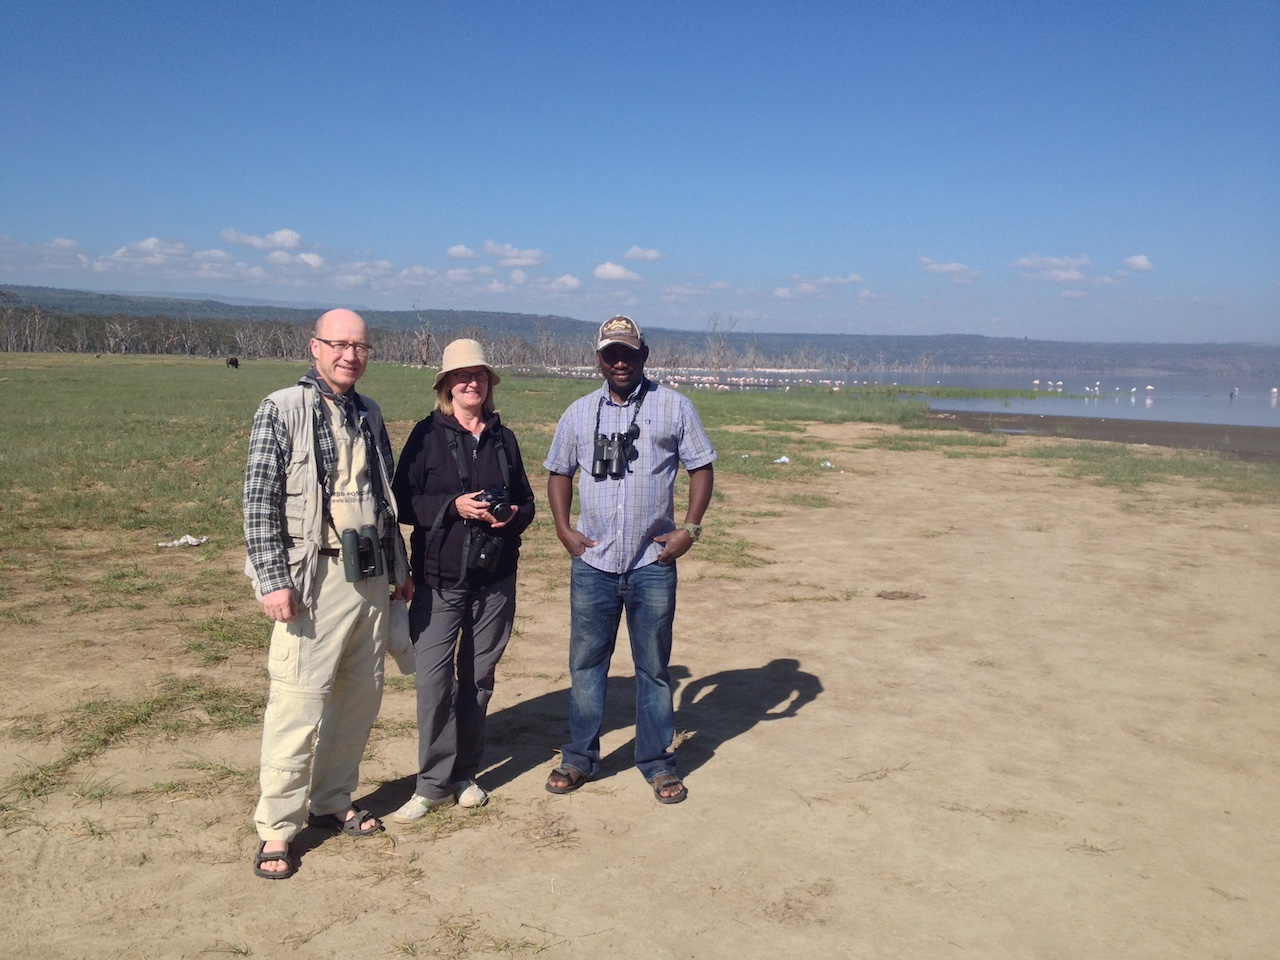 Finnish Couple, Kim soderling and Lampen Hikka at the shores of Lake Nakuru during a short birding trip in October 2017